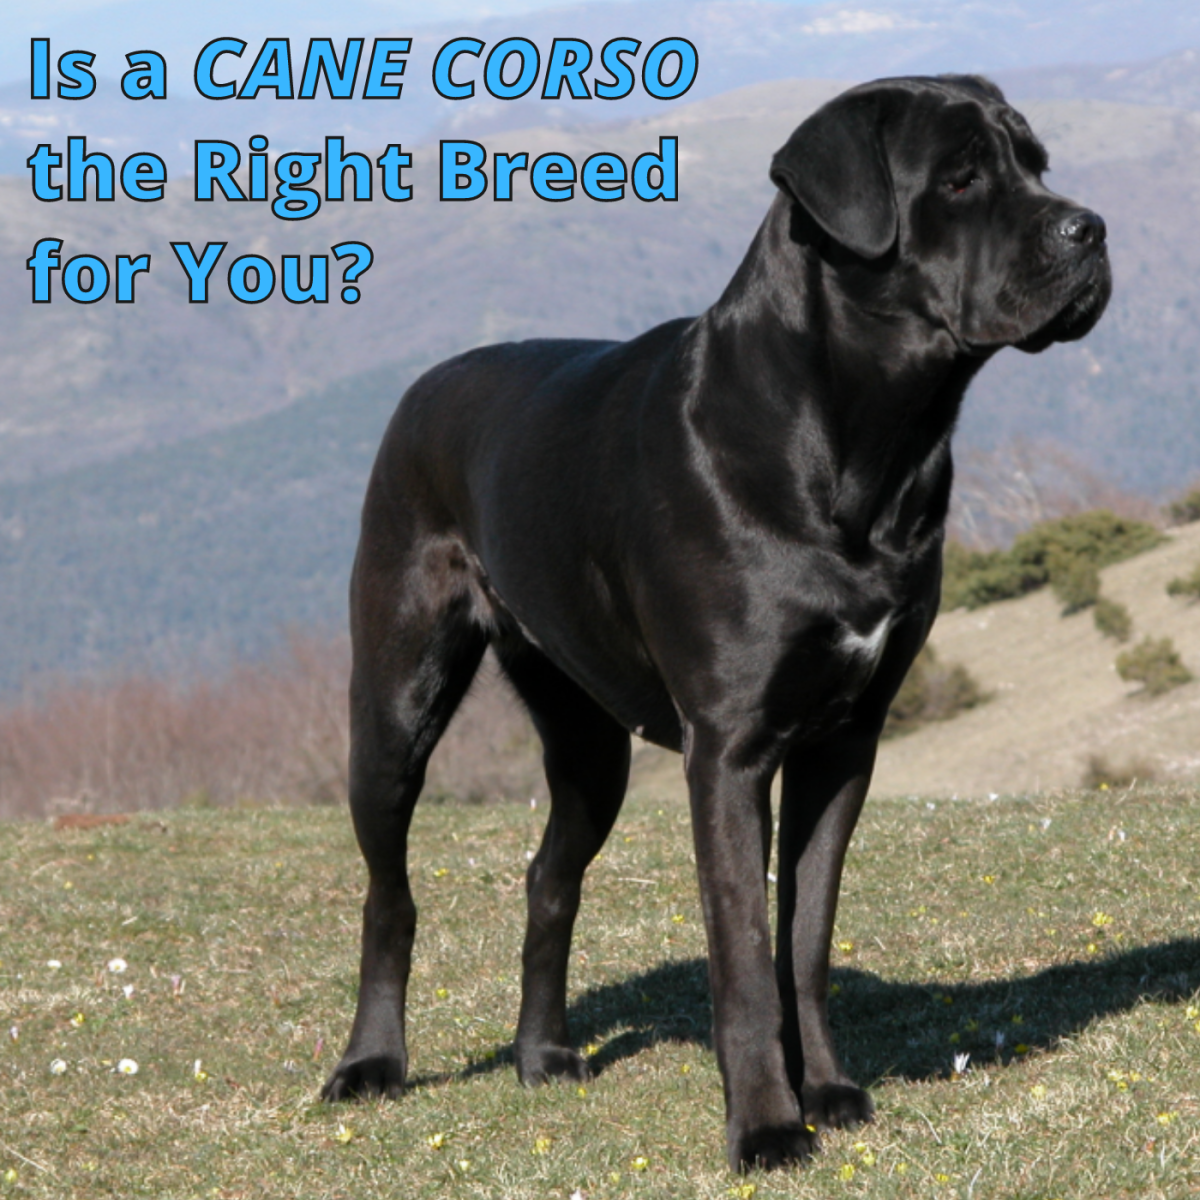 The Cane Corso is an amazing breed that can make a wonderful pet.